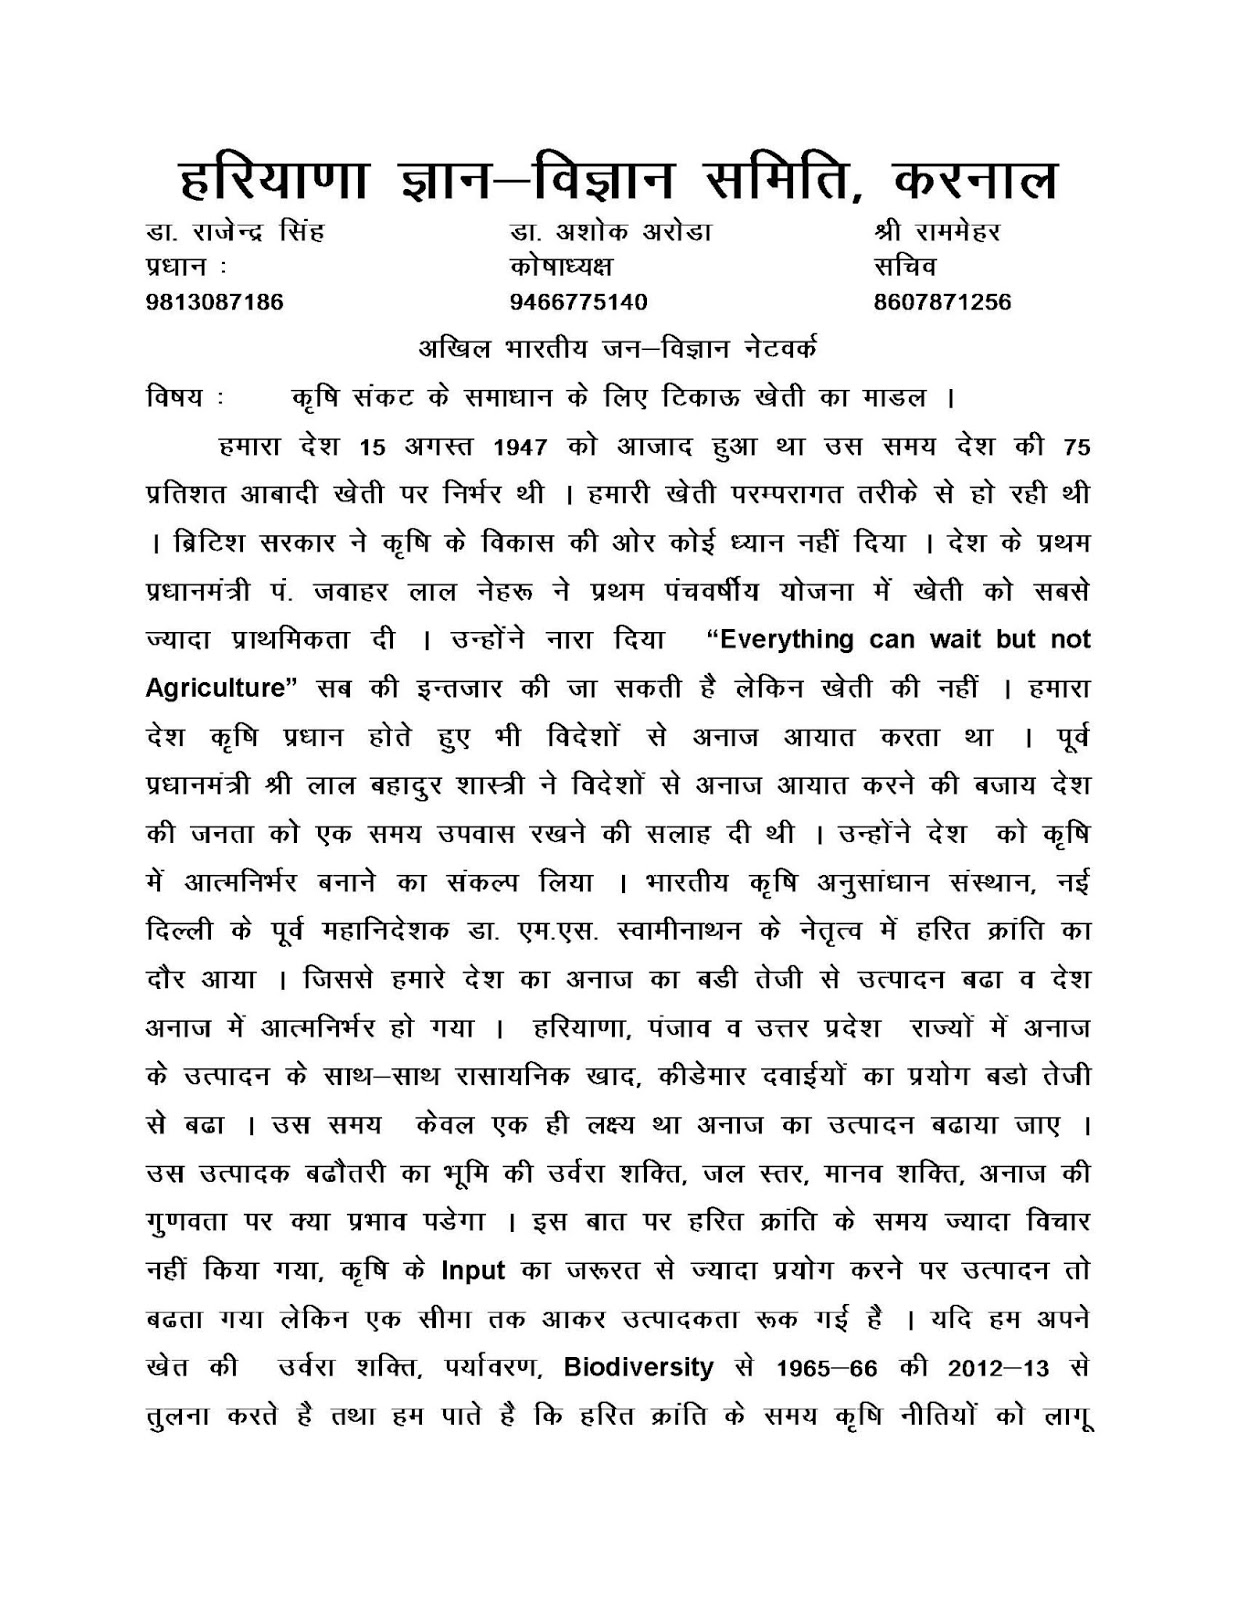 Bhrun hatya essay in punjabi language dictionary